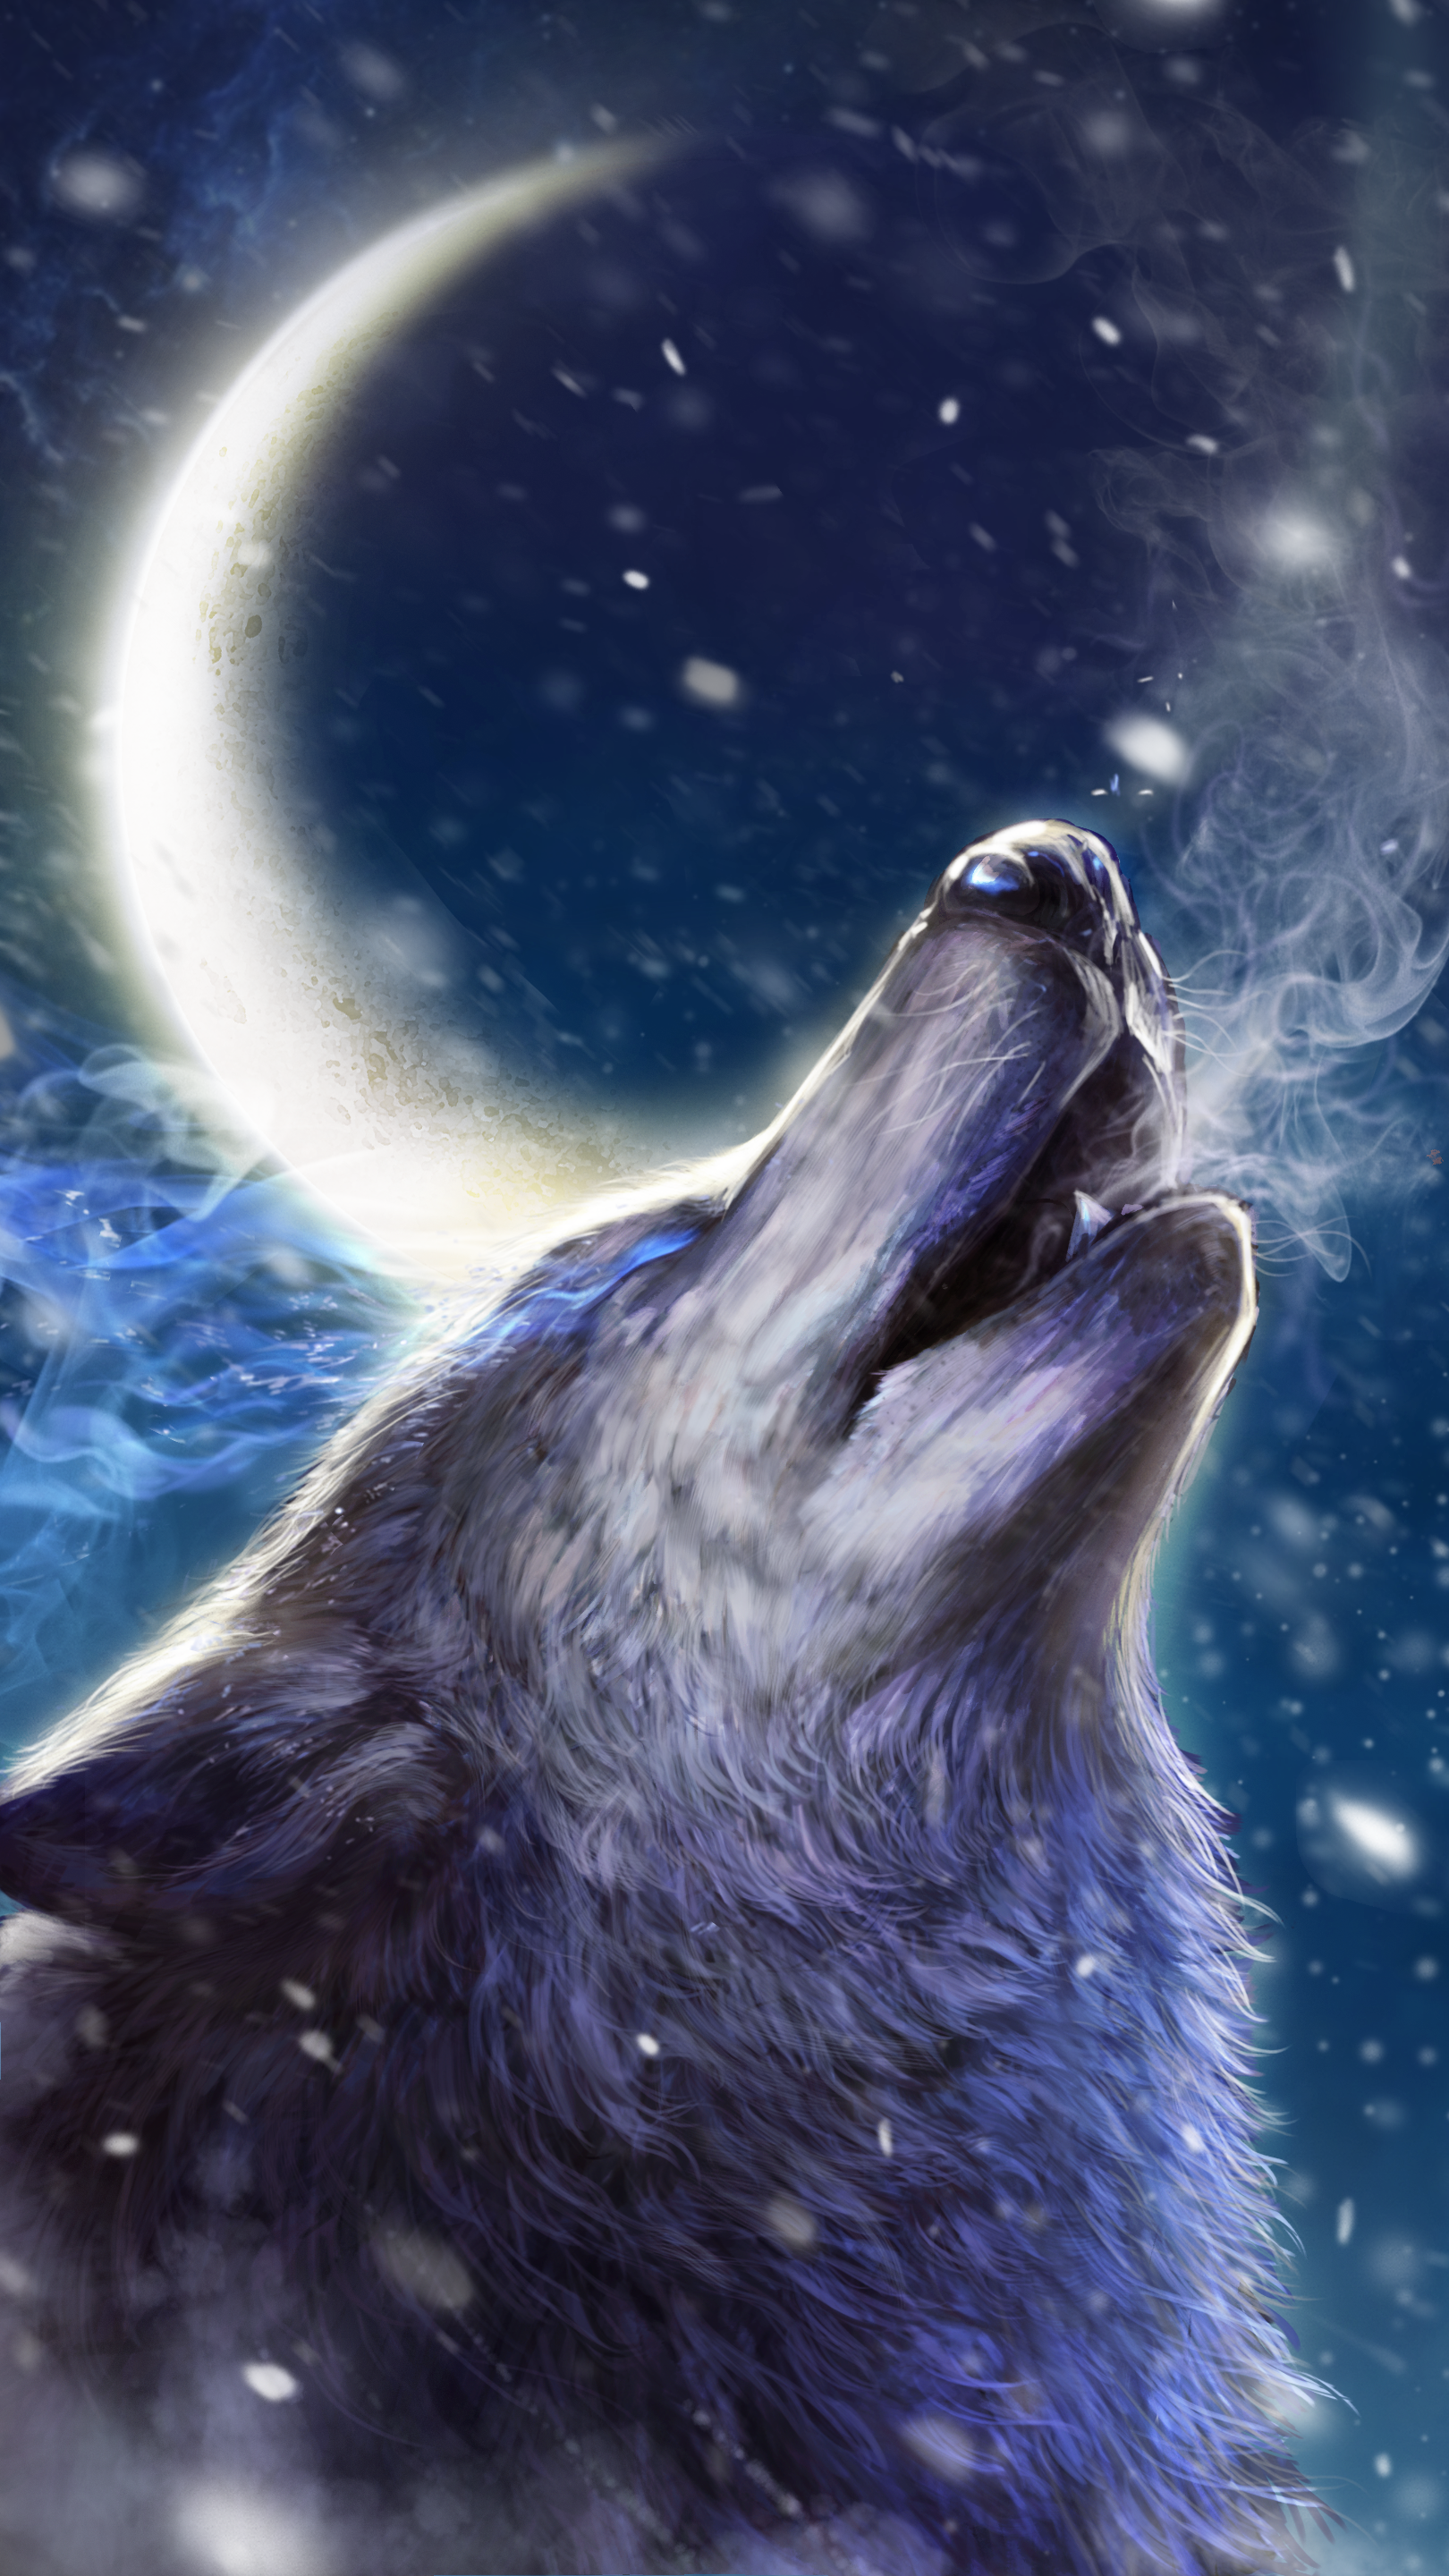 Howling wolf live wallpaper! | Android live wallpapers from Ahatheme in 2019 | Pinterest | Wolf ...